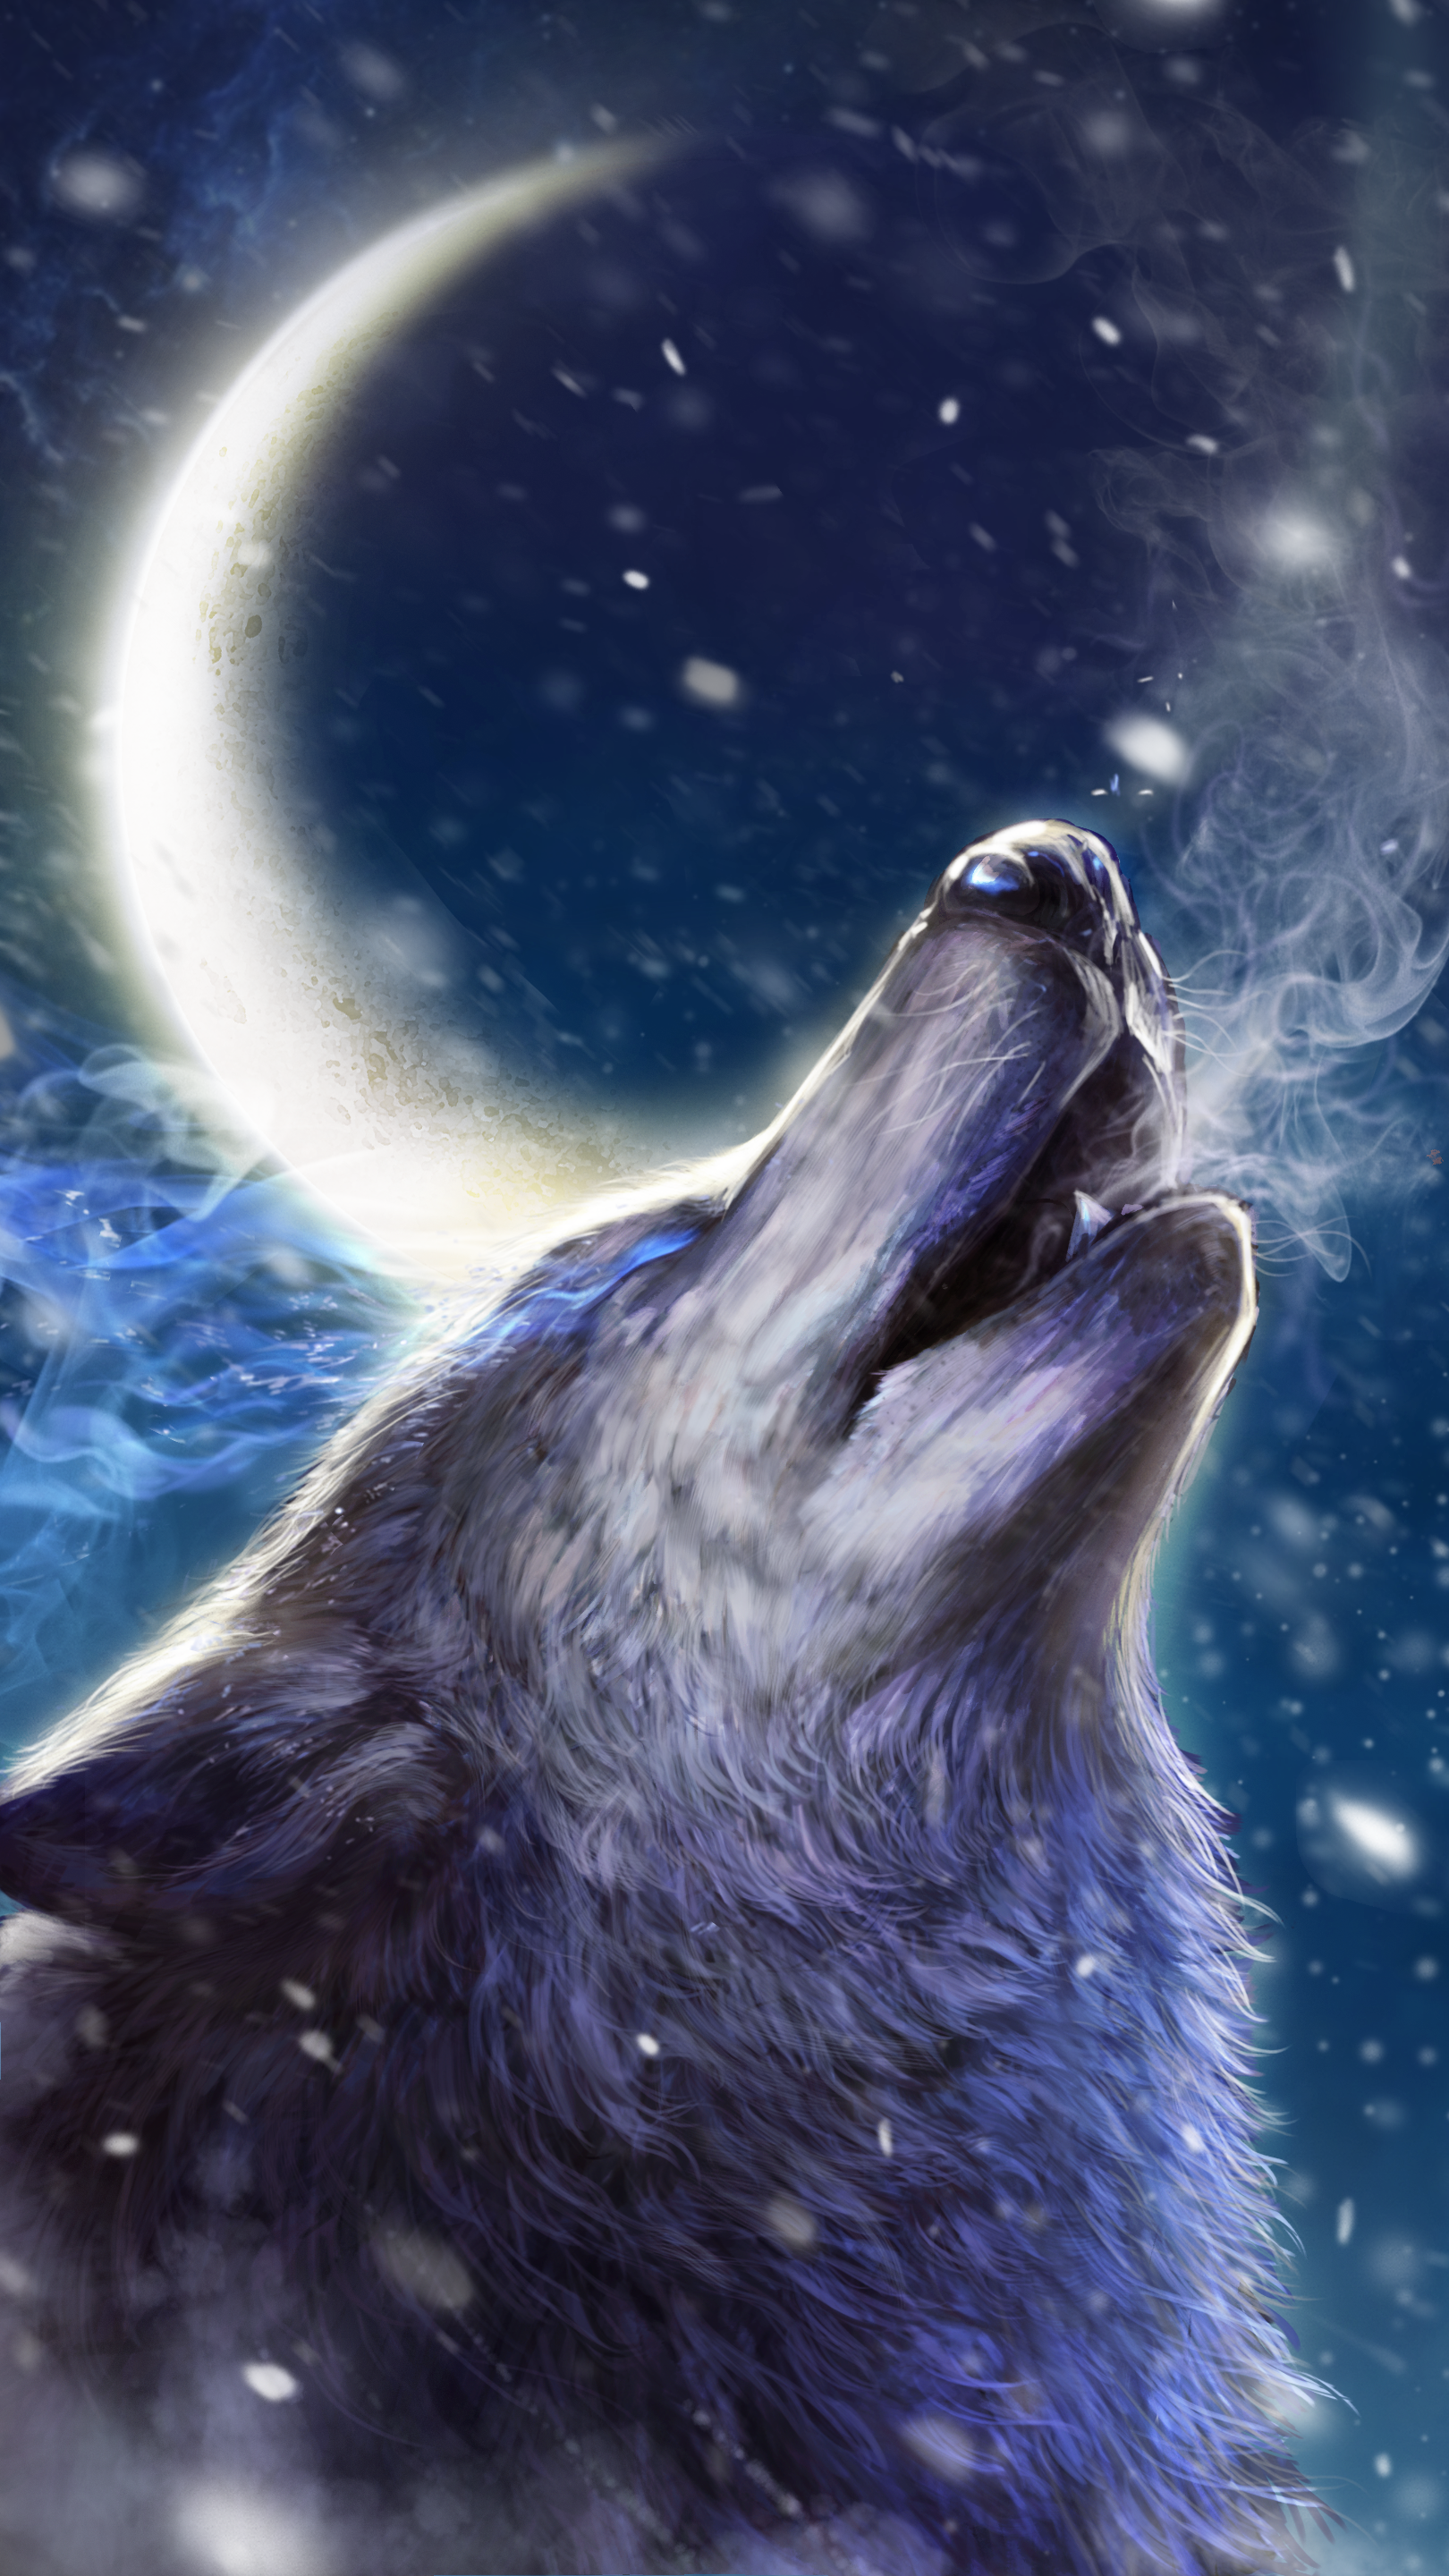 Howling wolf live wallpaper! | Android live wallpapers from Ahatheme in 2019 | Pinterest | Wolf ...